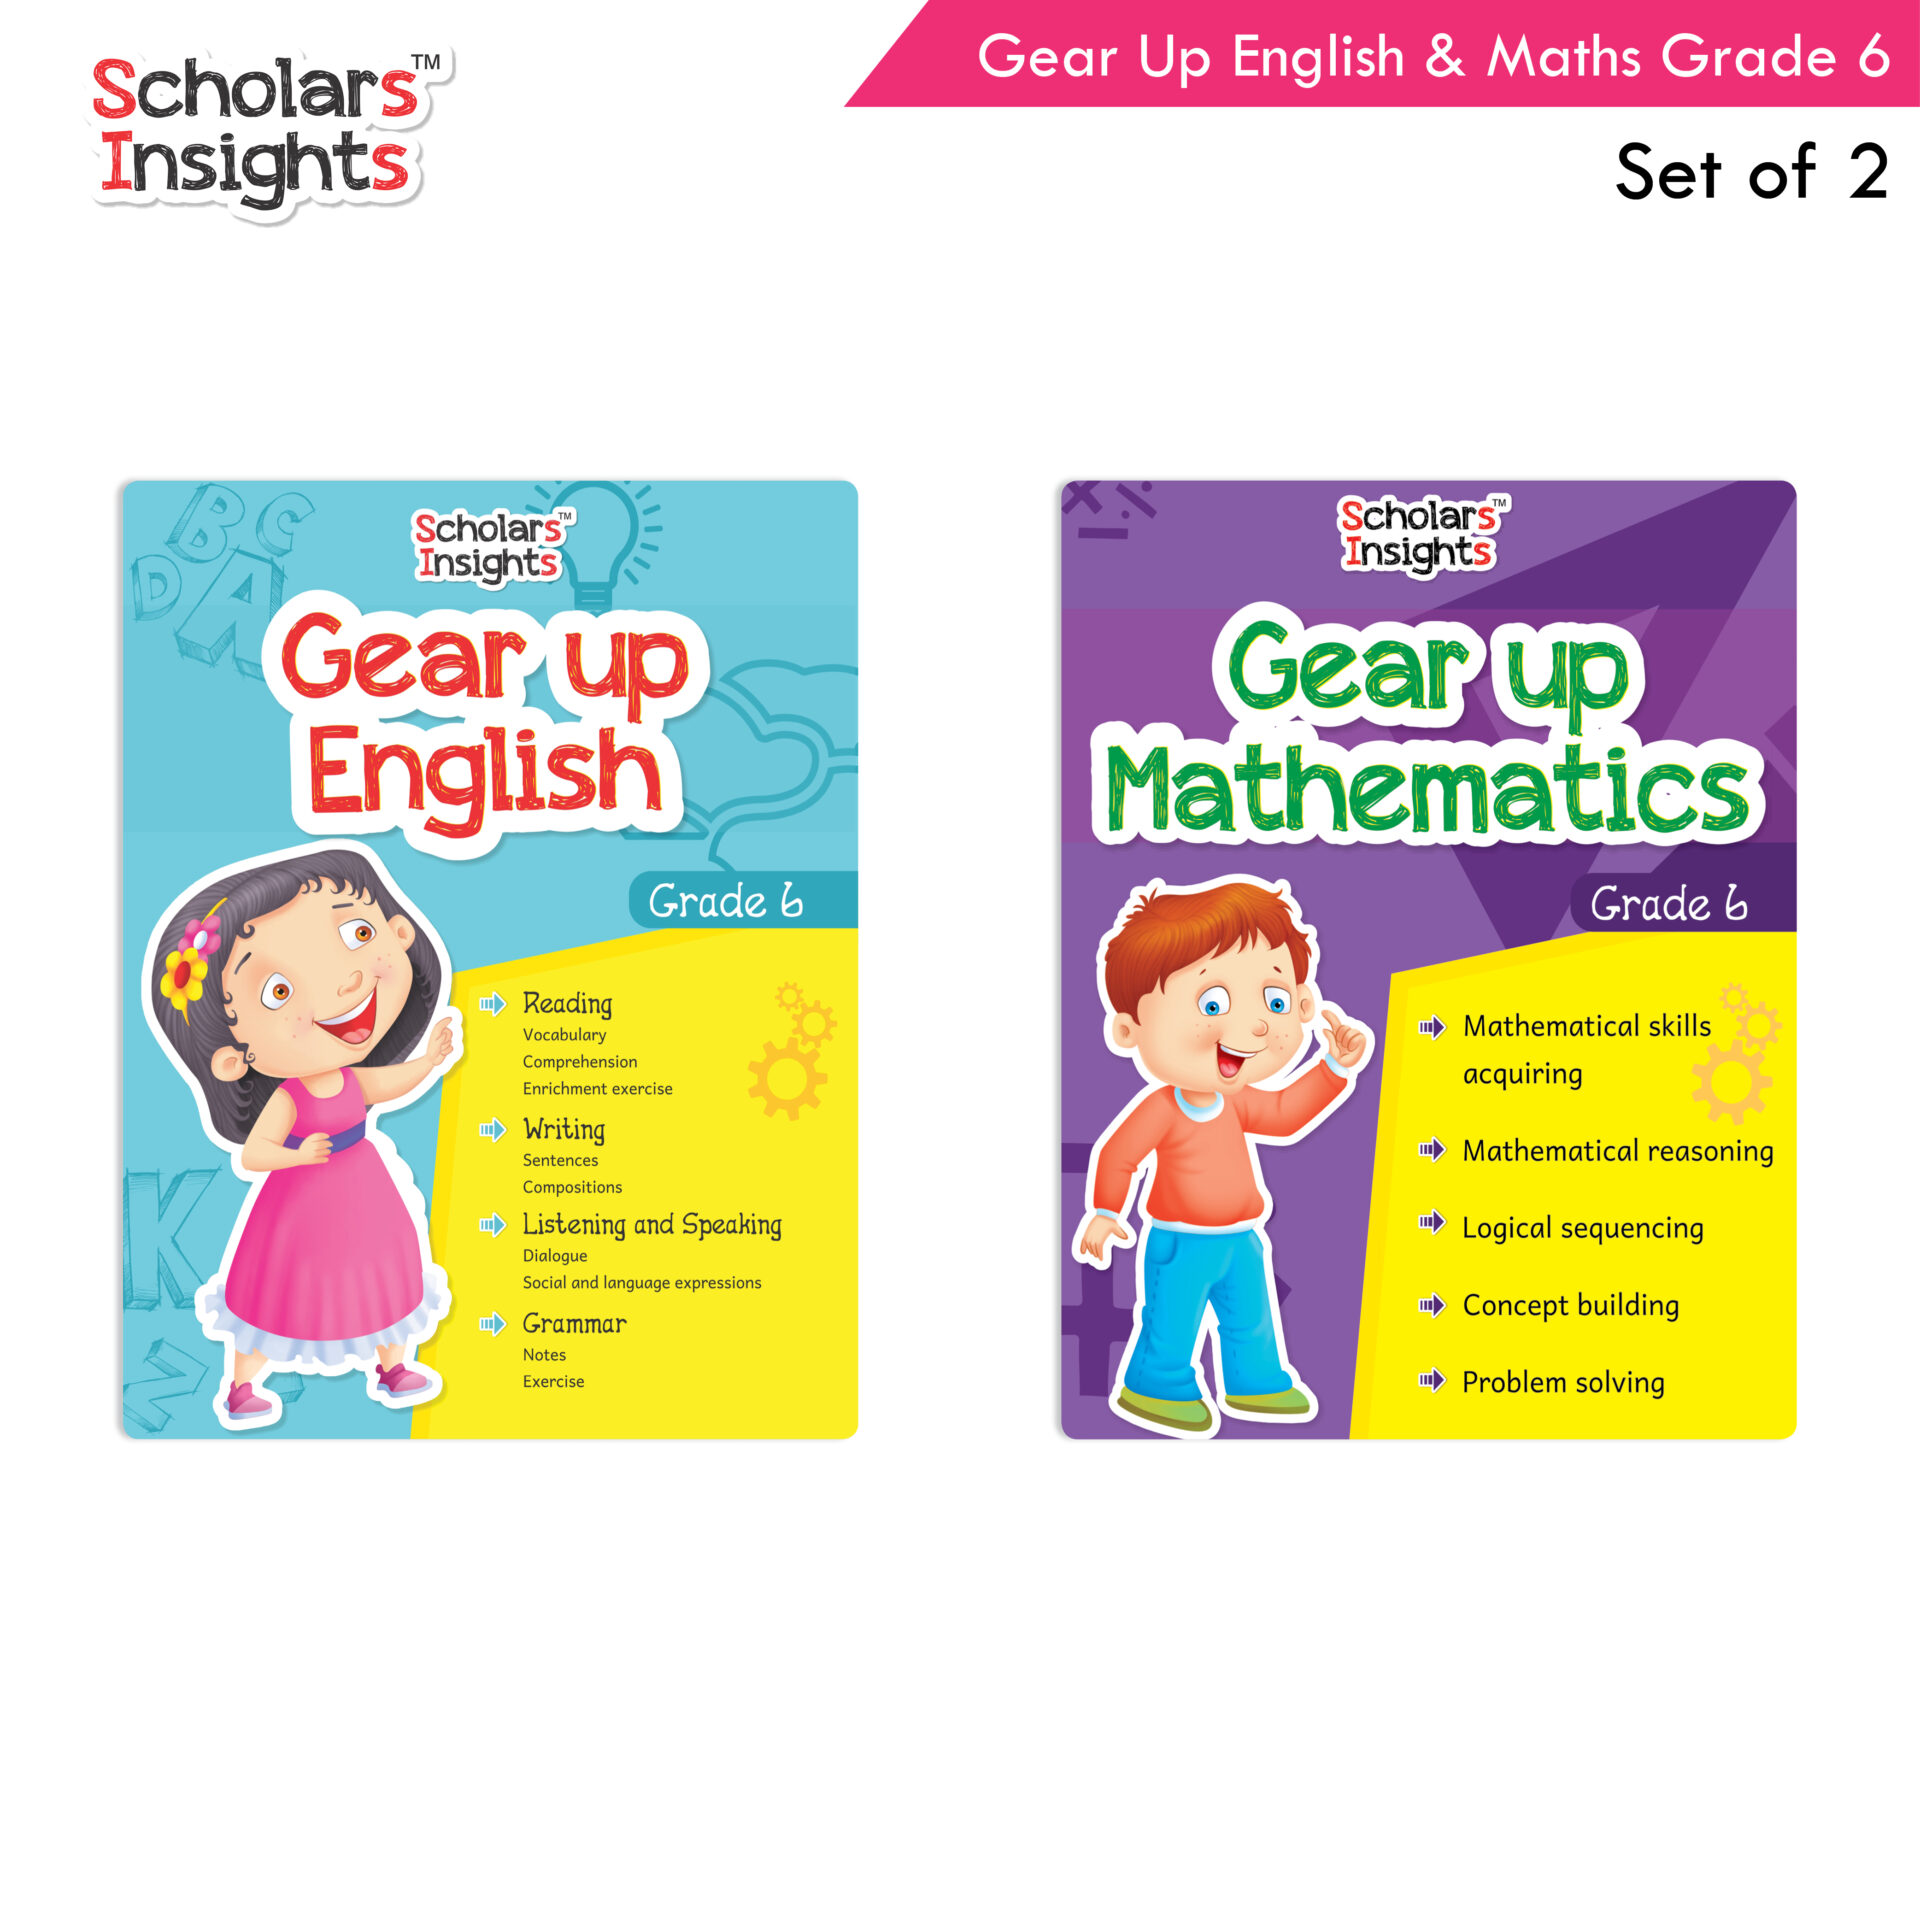 Scholars Insights Gear Up English and Maths Grade 6 Set of 2 1